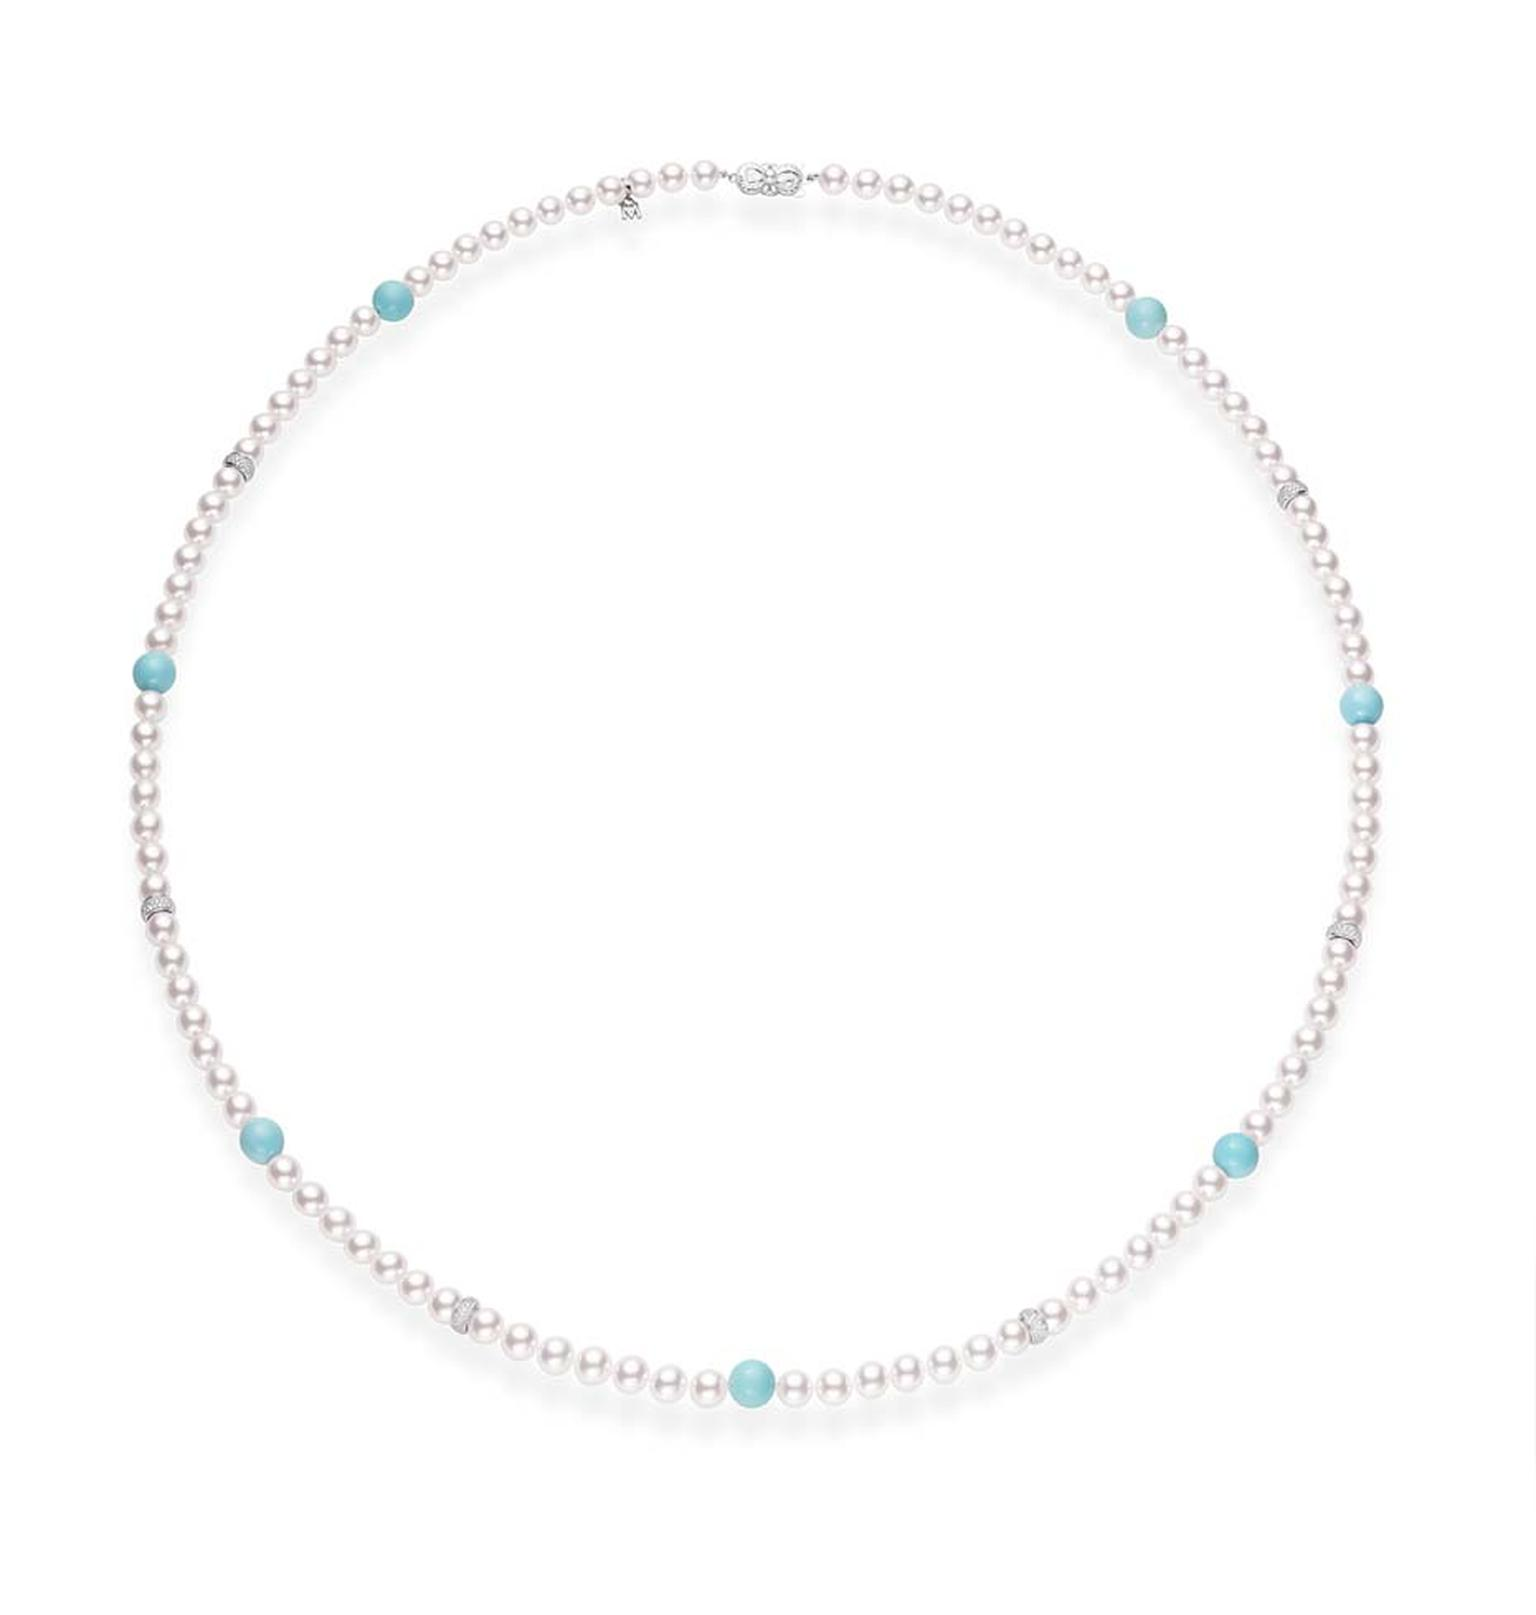 Mikimoto single strand Ayoya cultured pearl necklace with turquoise beads.